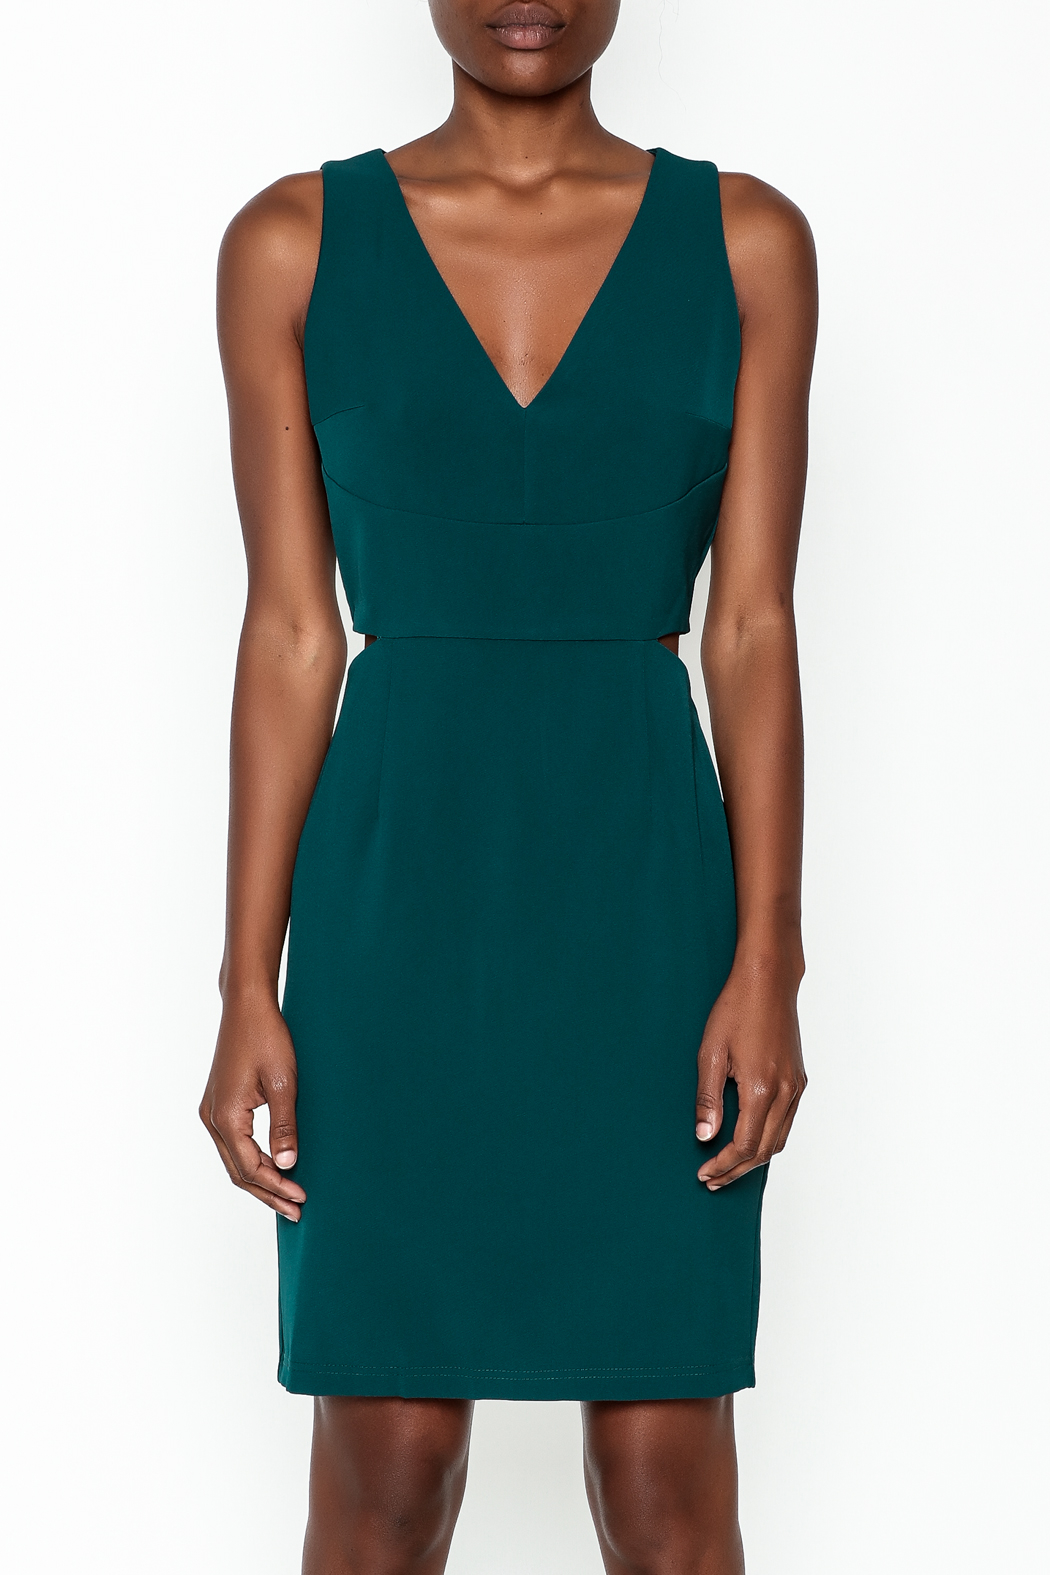 C. Luce Cutout Side Dress - Front Full Image